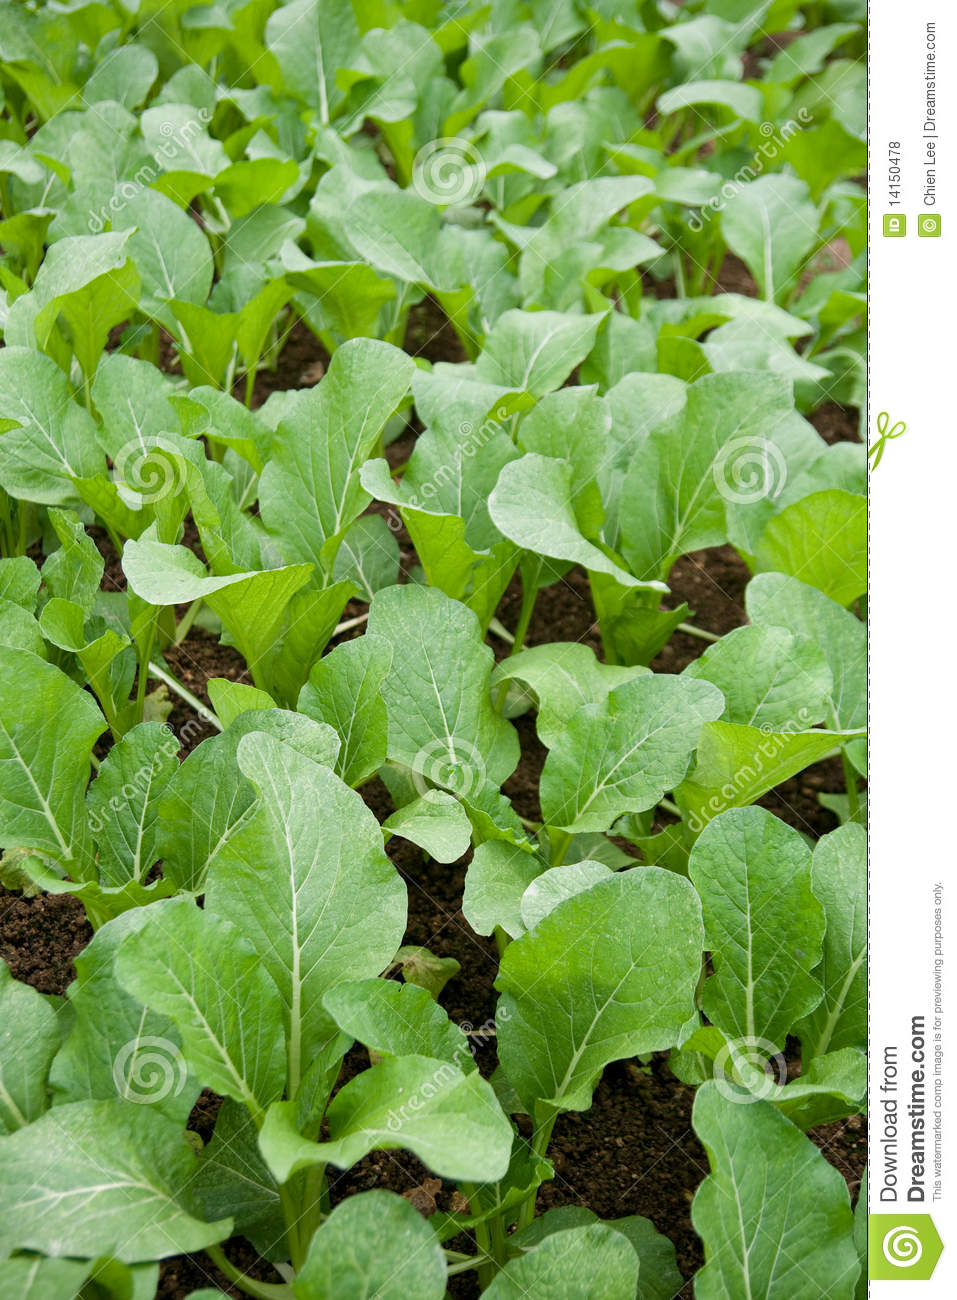 how to grow mustard plant at home